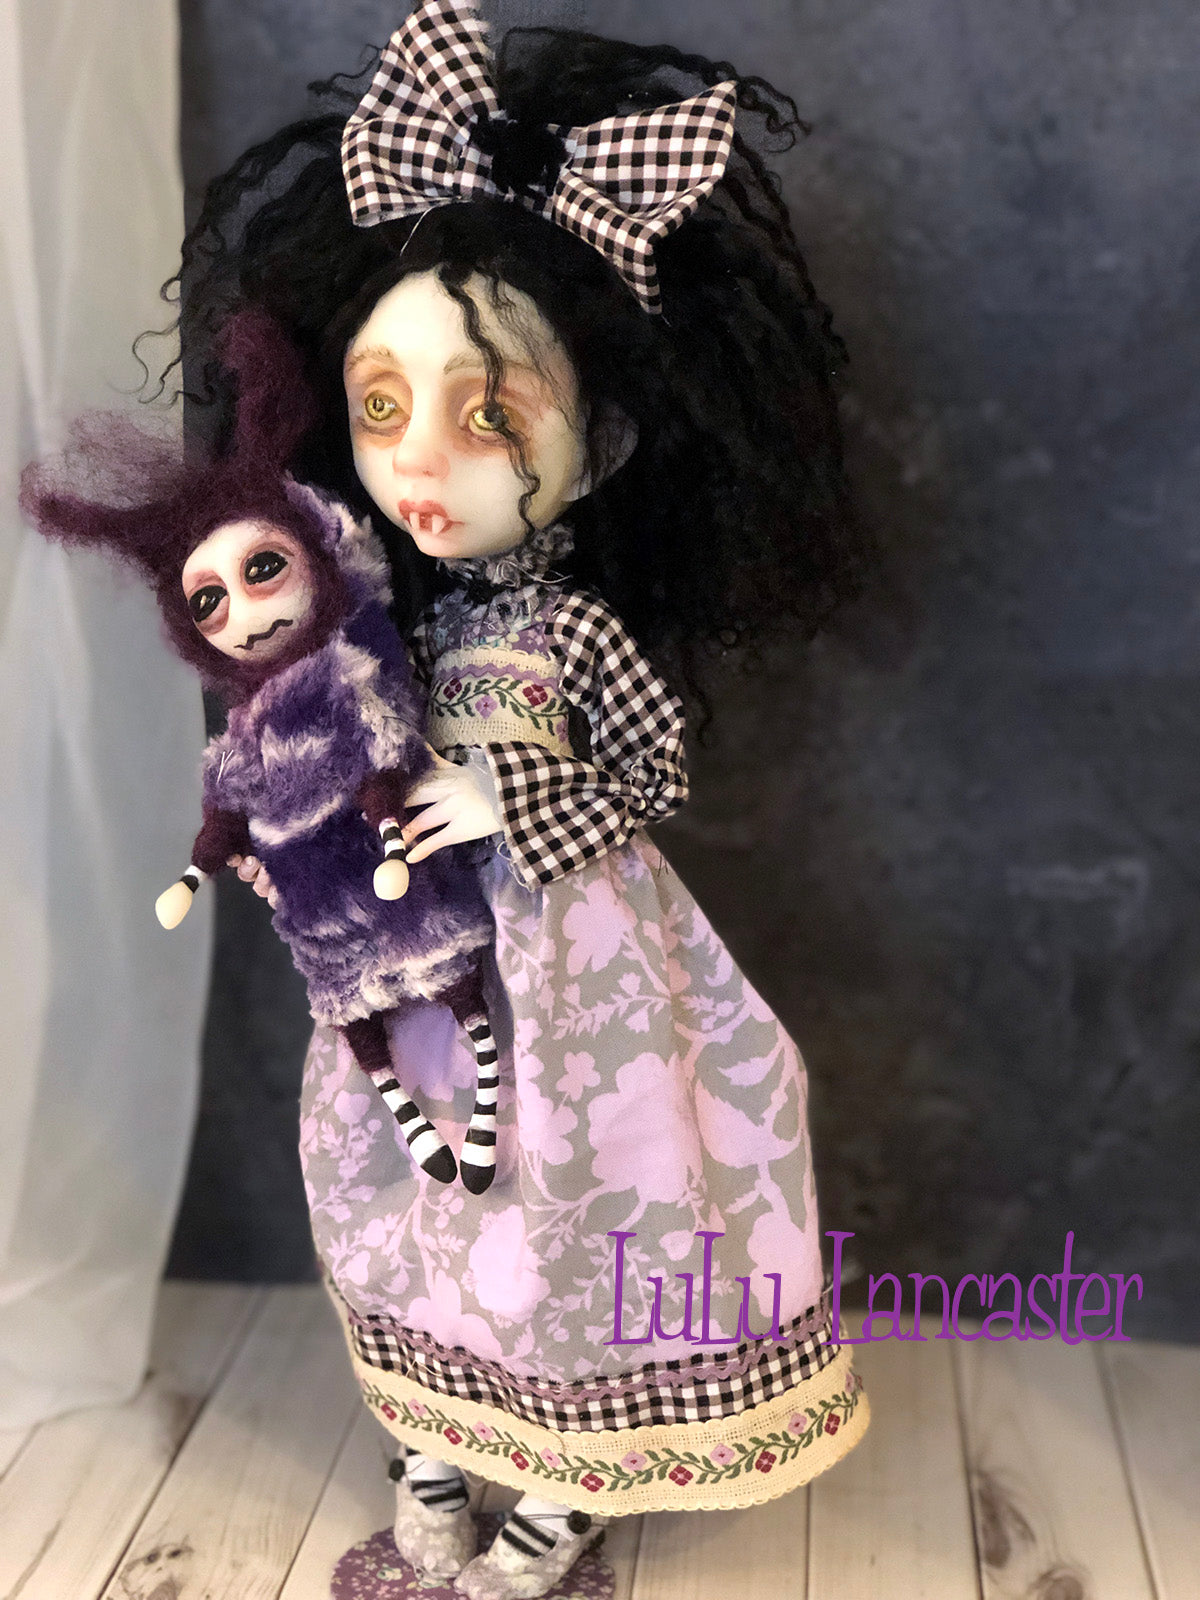 Beatrice VonDraga Vampire Halloween Original Art Doll by LuLu Lancaster